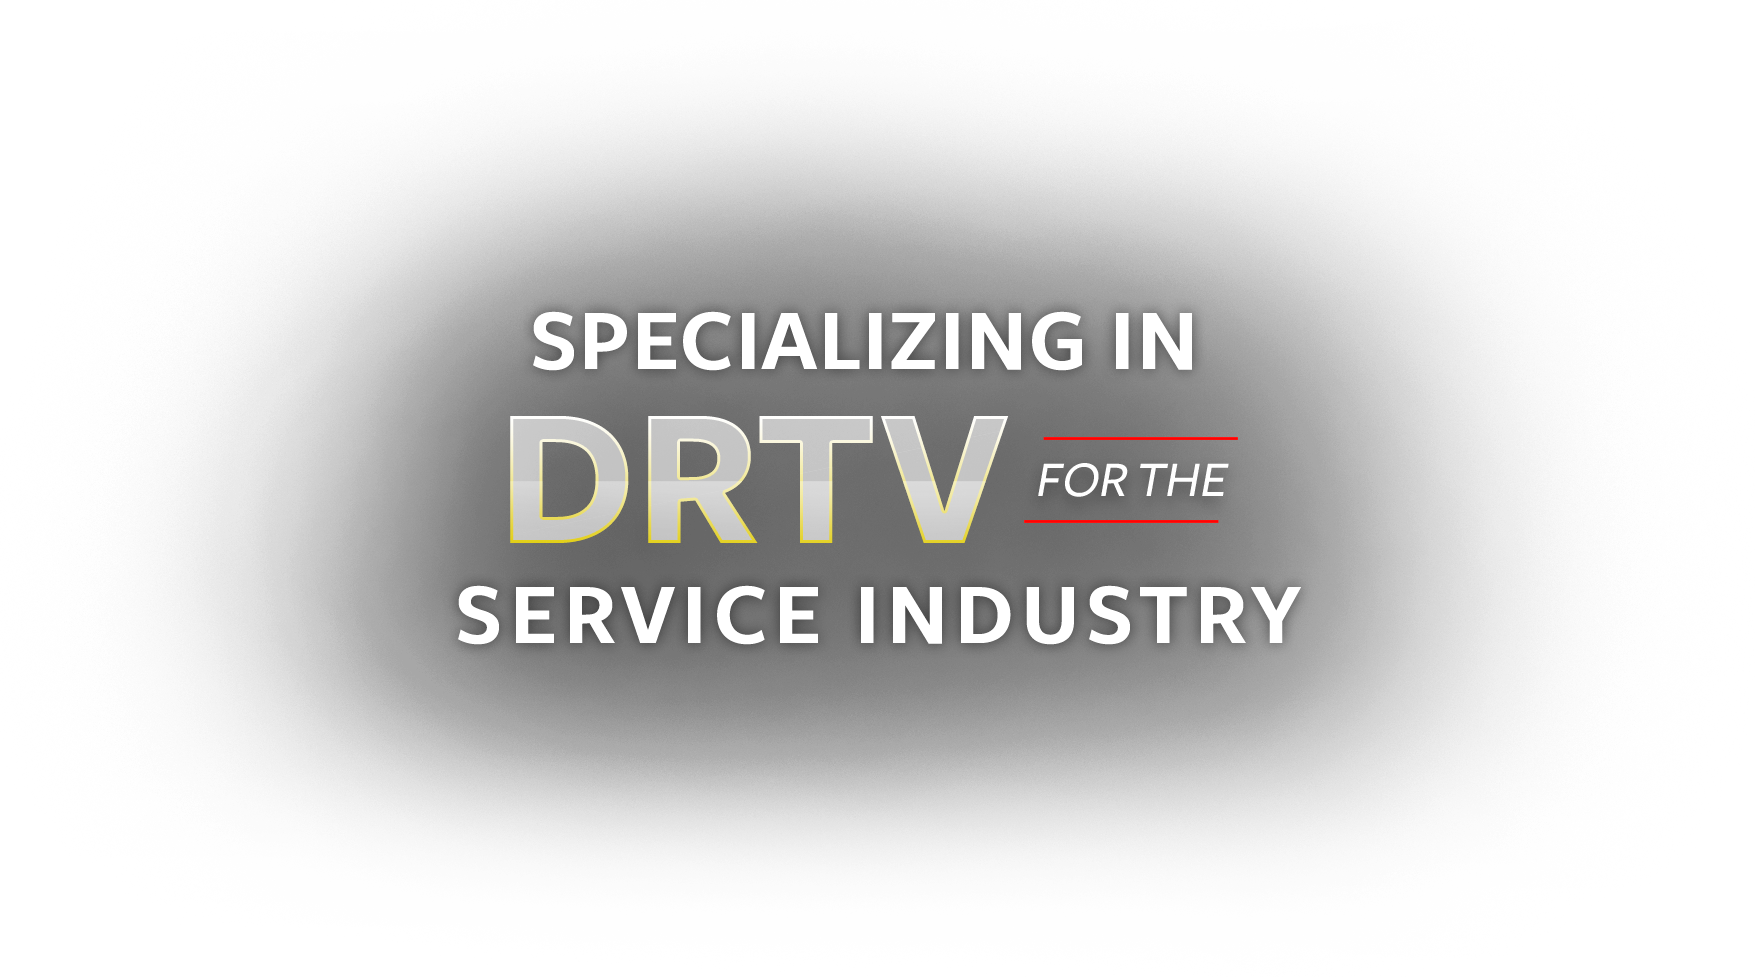 Specializing in DRTV Service Industry